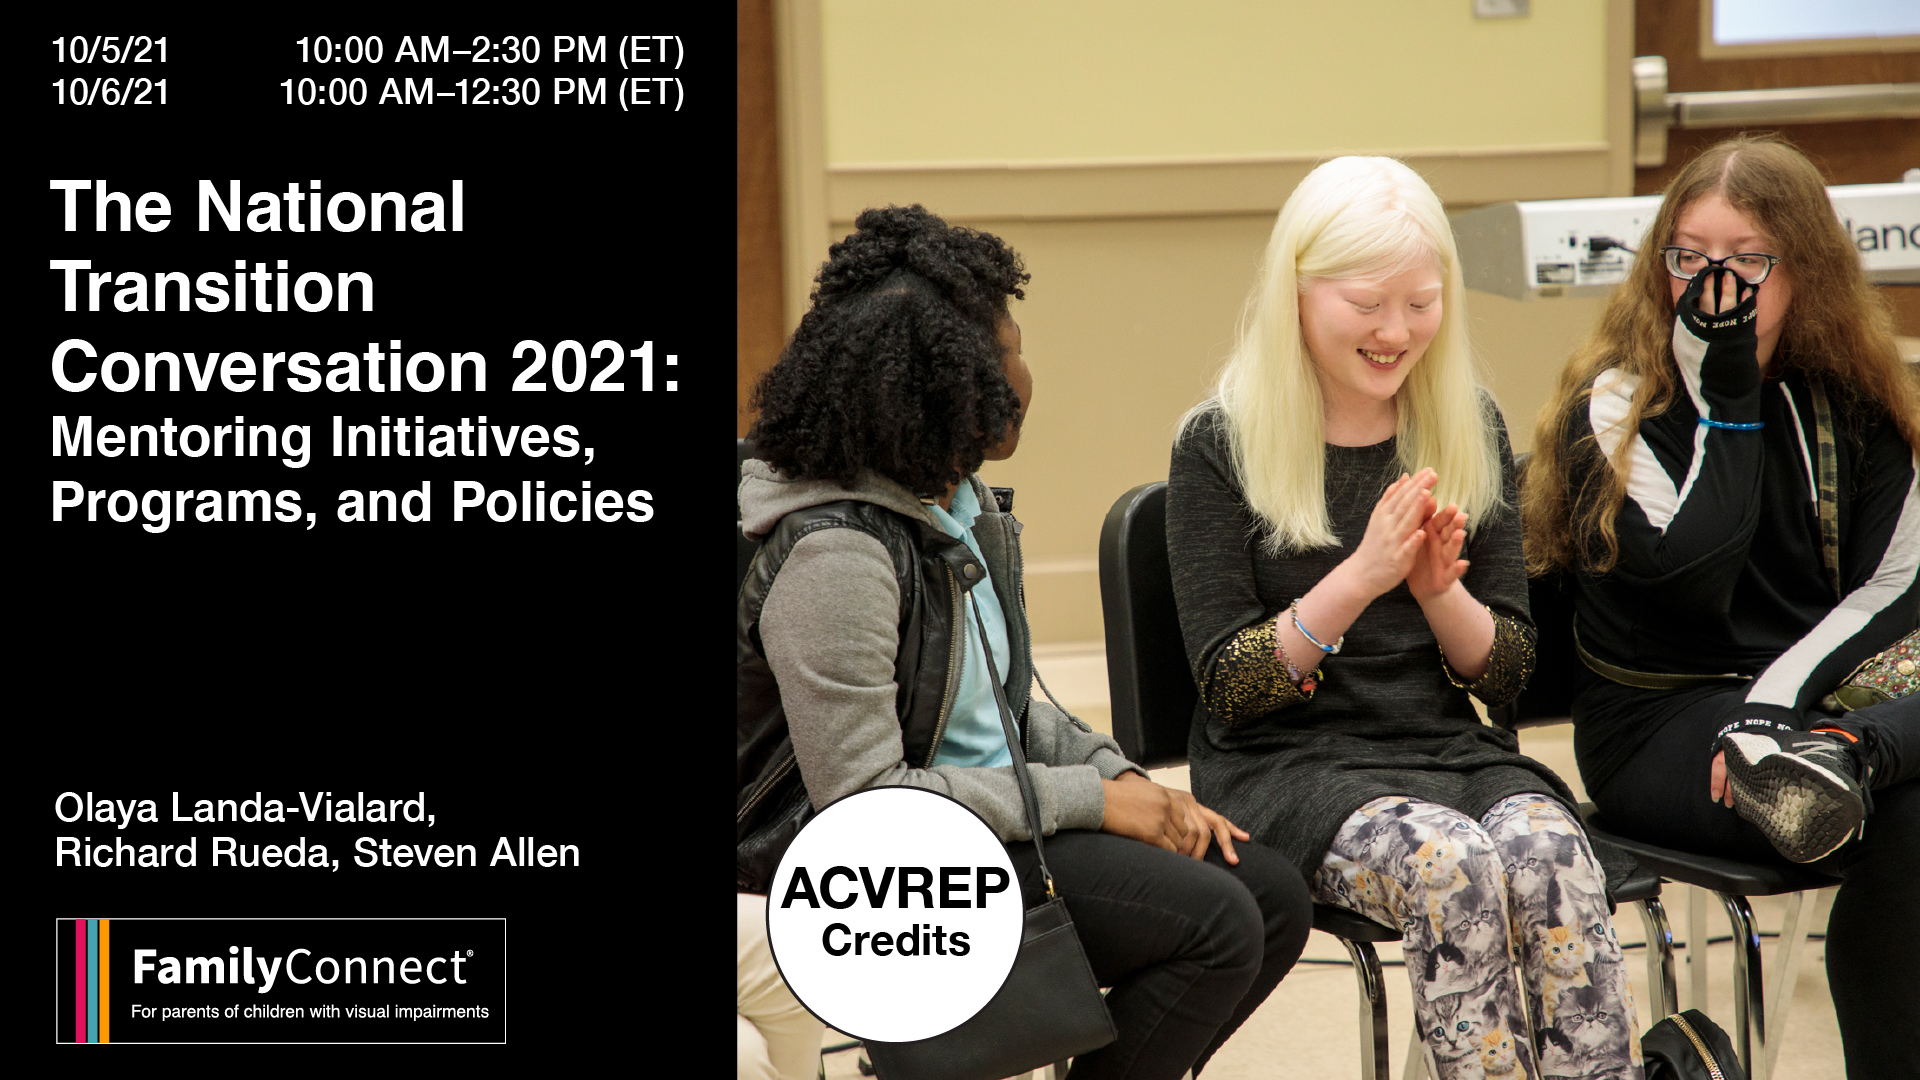 National Transition Conversation 2021 Mentoring Initiatives, Programs and Policies